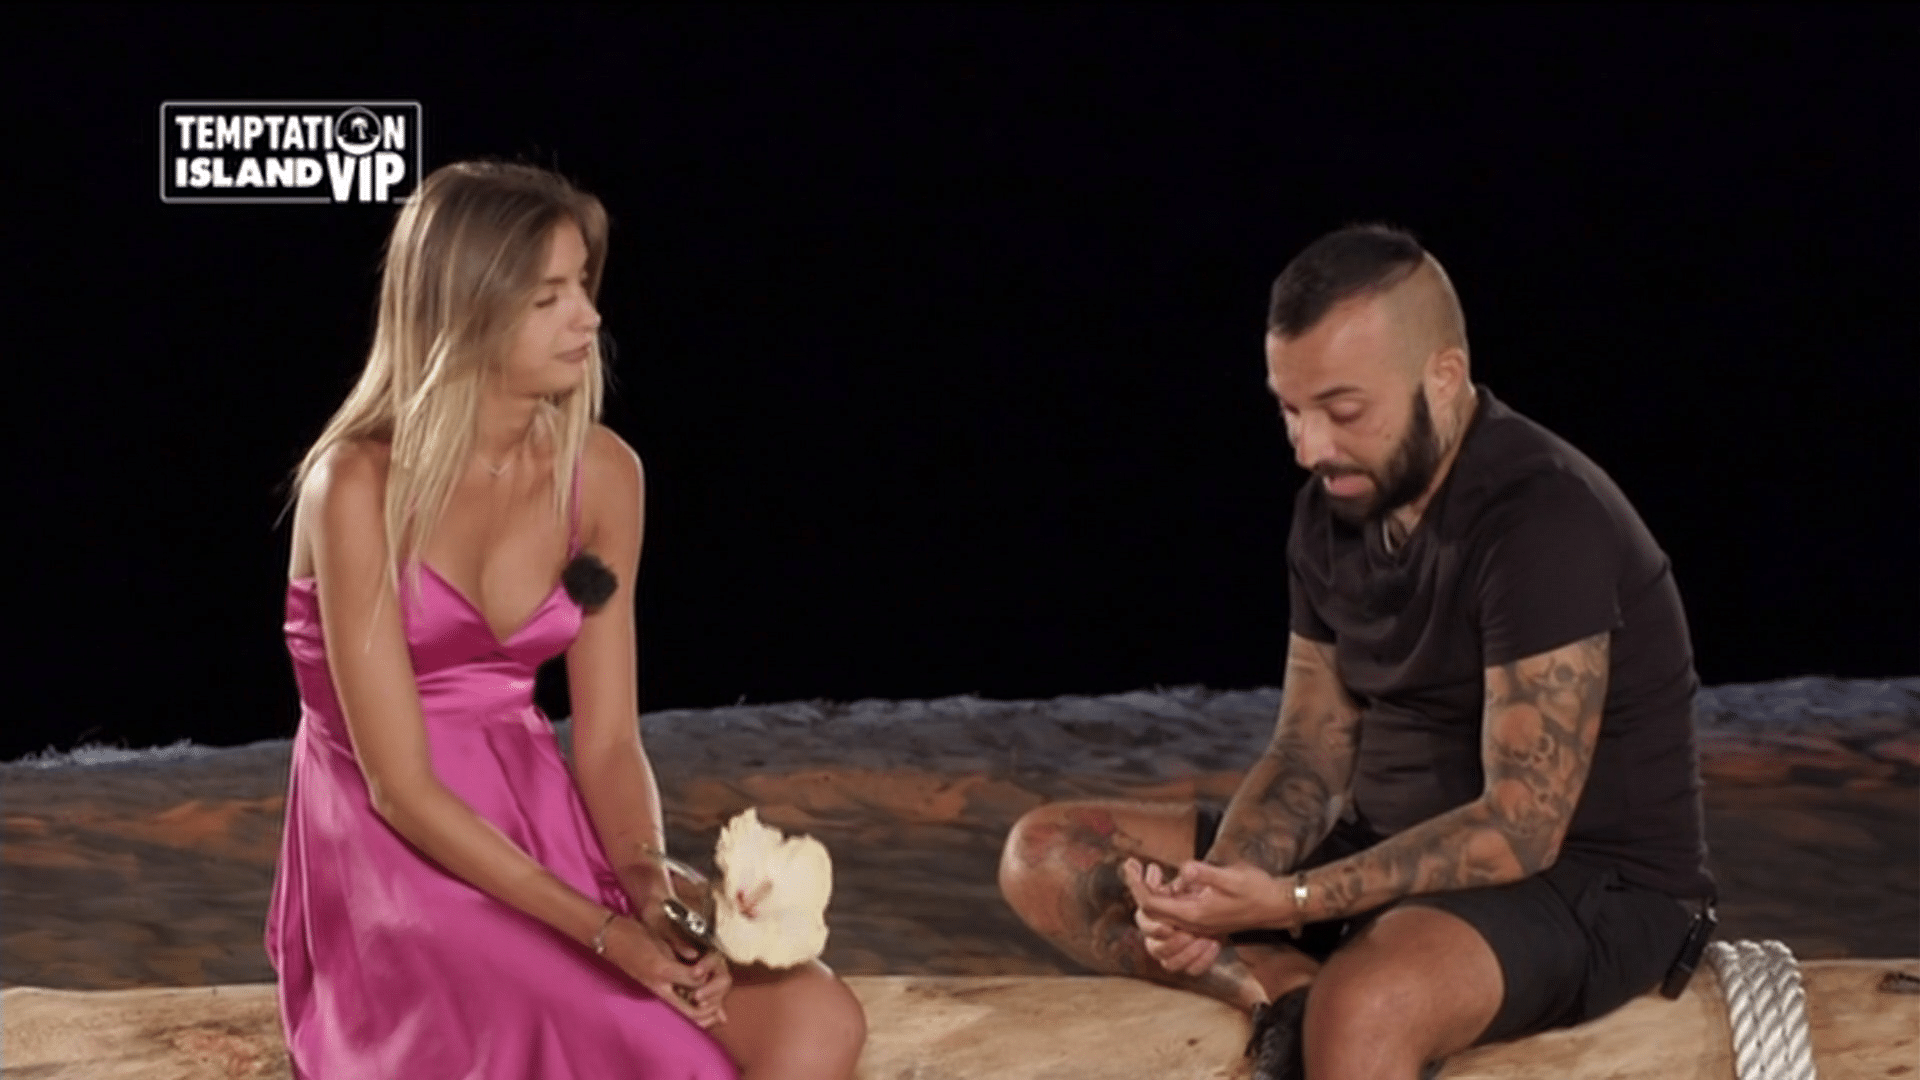 Temptation Island Vip 2019 seconda puntata